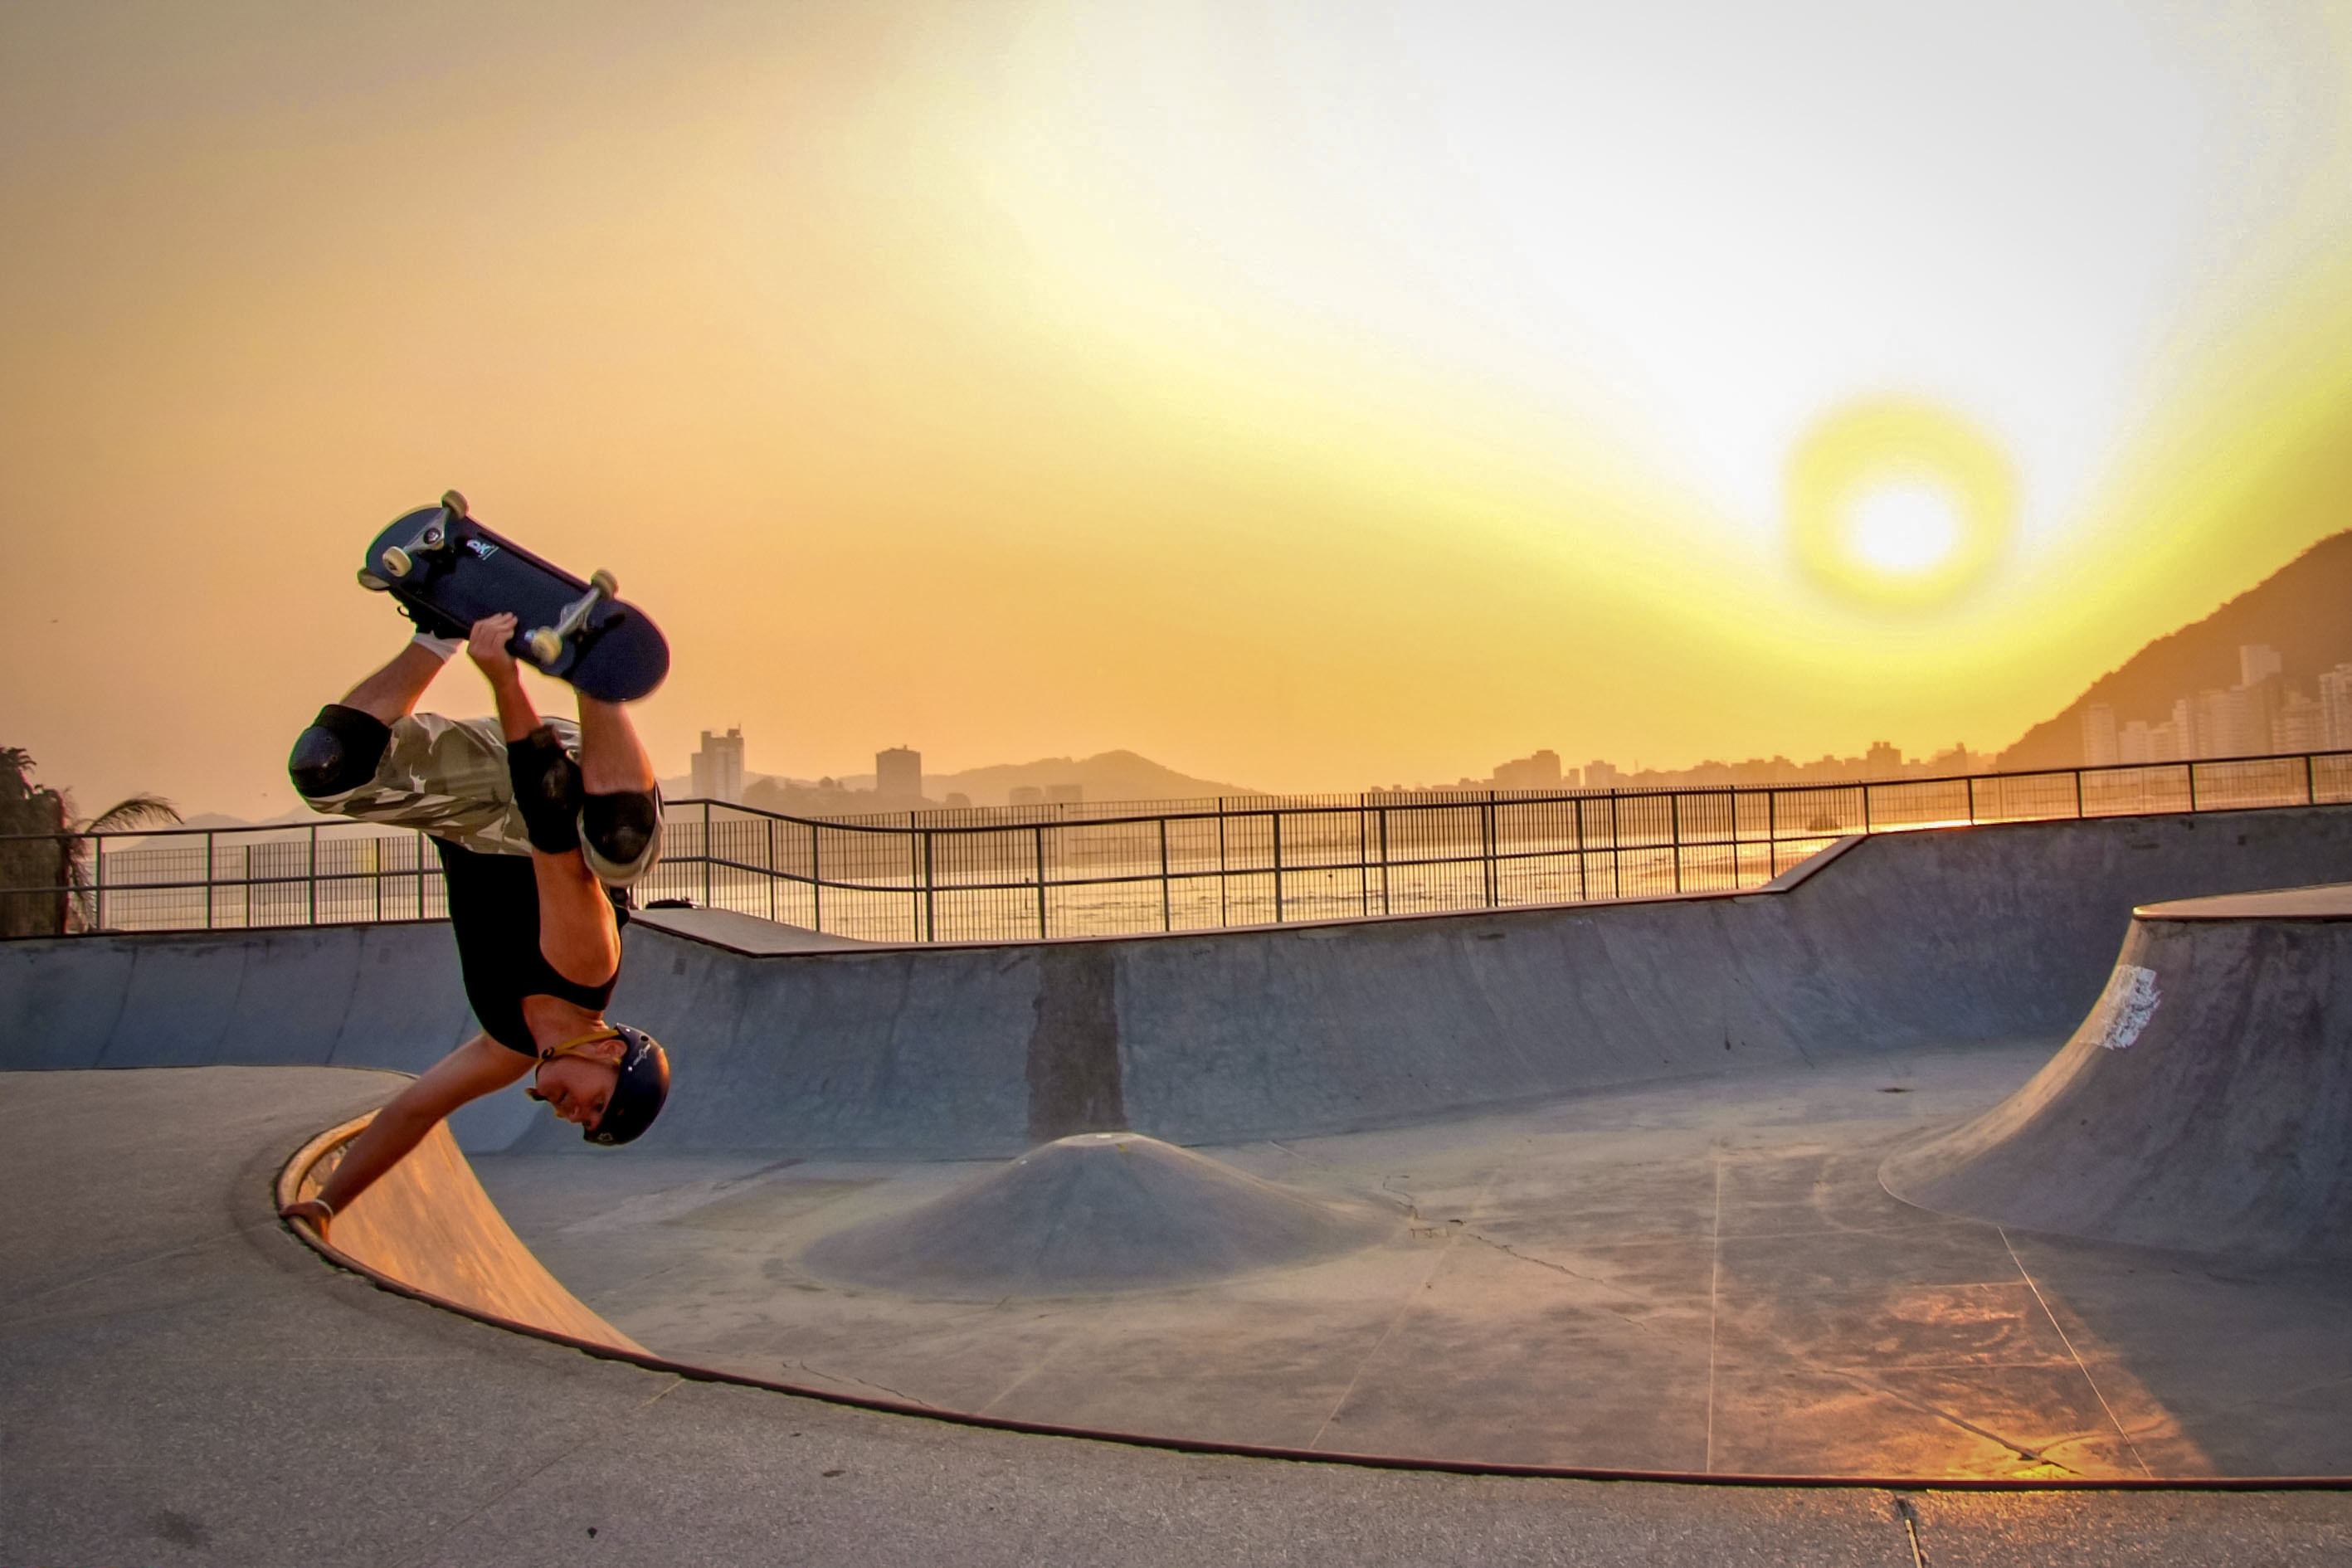 Cool Iphone 4 Wallpapers Hd 100 Beautiful Skateboard Photos 183 Pexels 183 Free Stock Photos